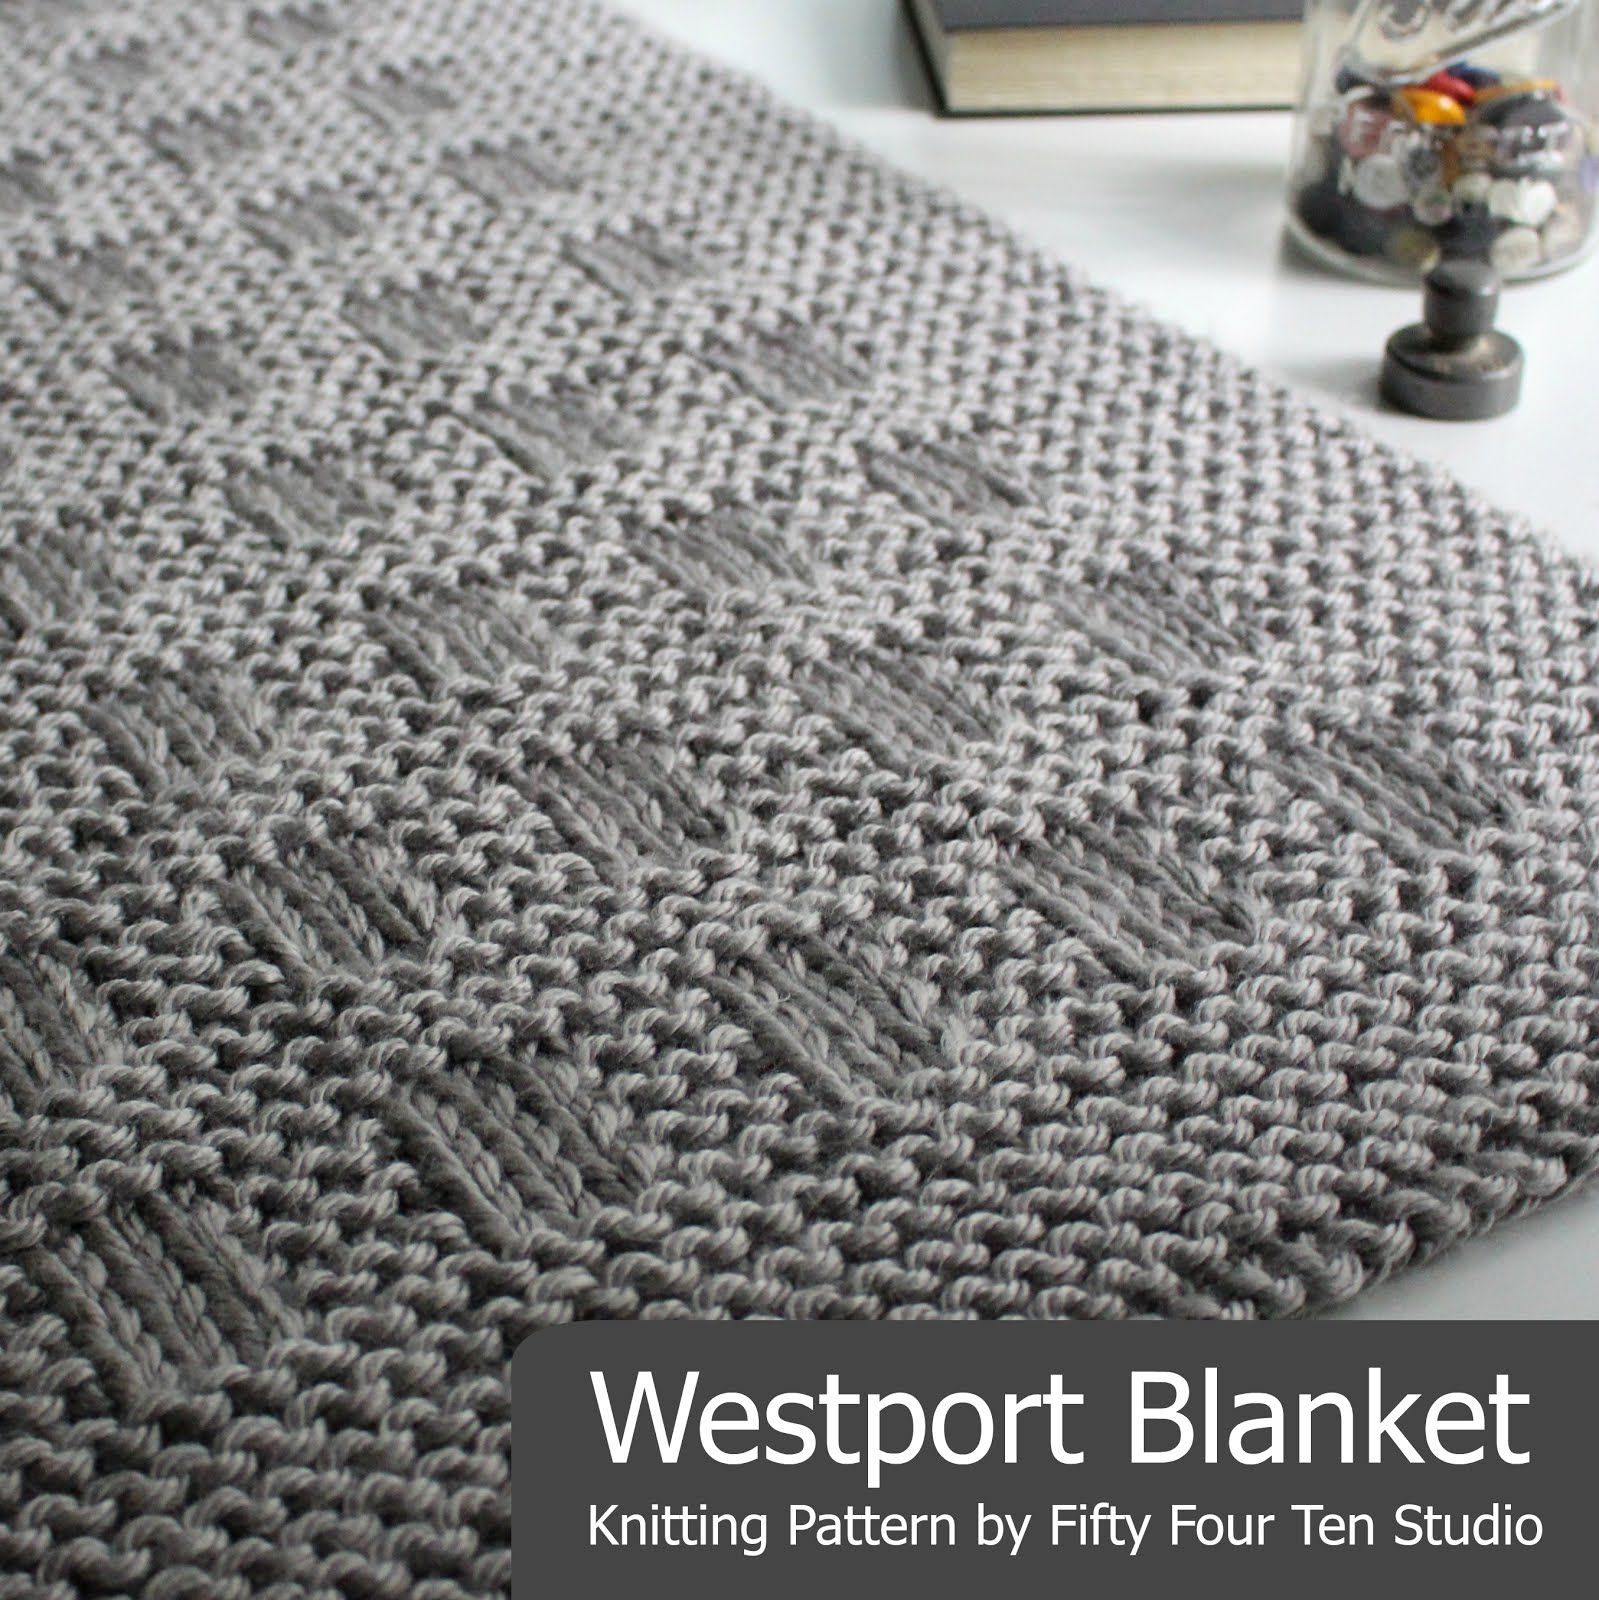 Westport Blanket | Häkeln & Stricken | Pinterest | Babydecken, Decke ...